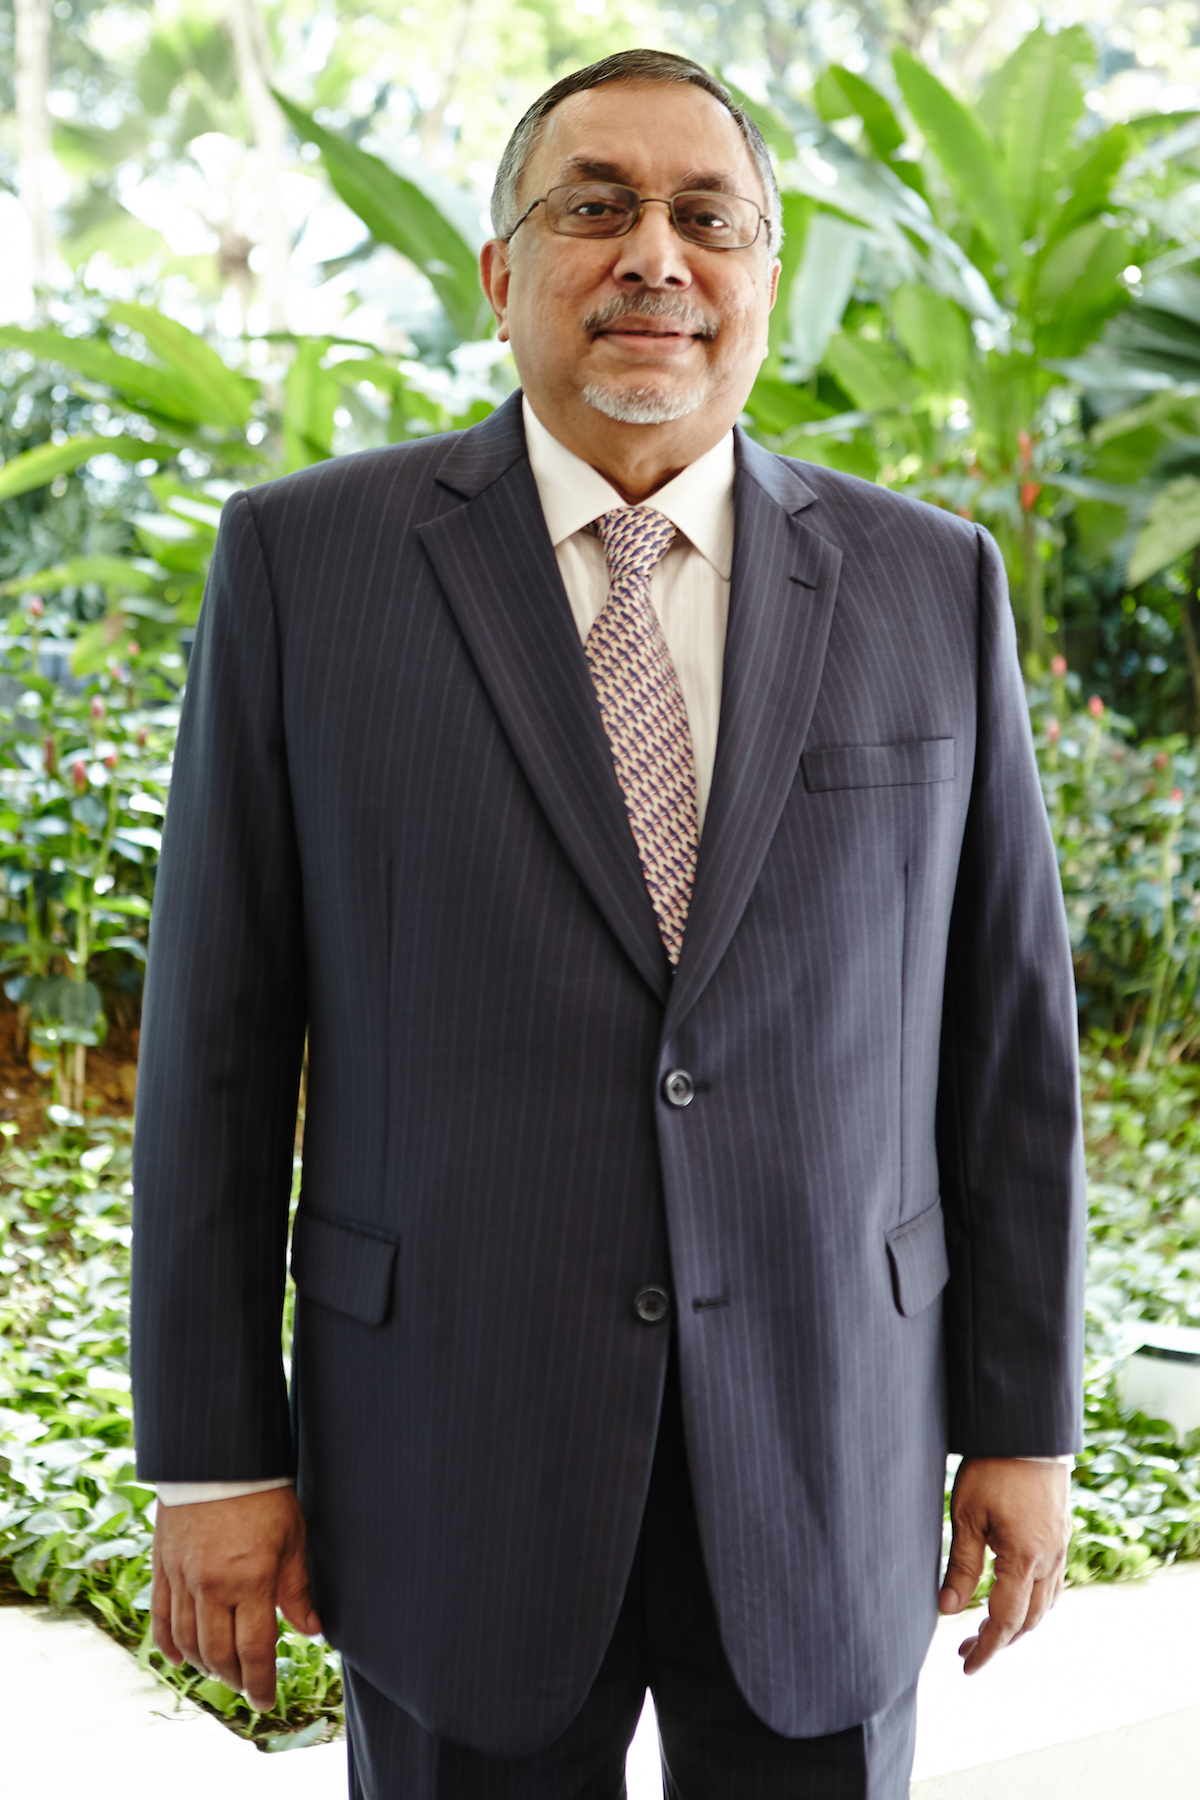 Zainul Azman CEO of Dimensi Eksklusif